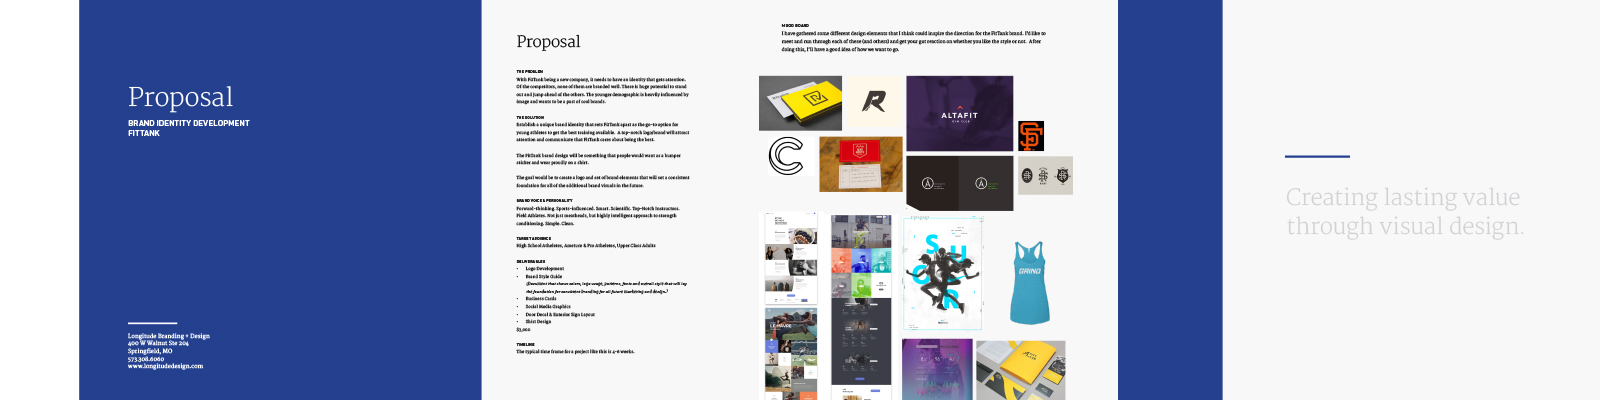 Example of a Creative Brief/Proposal